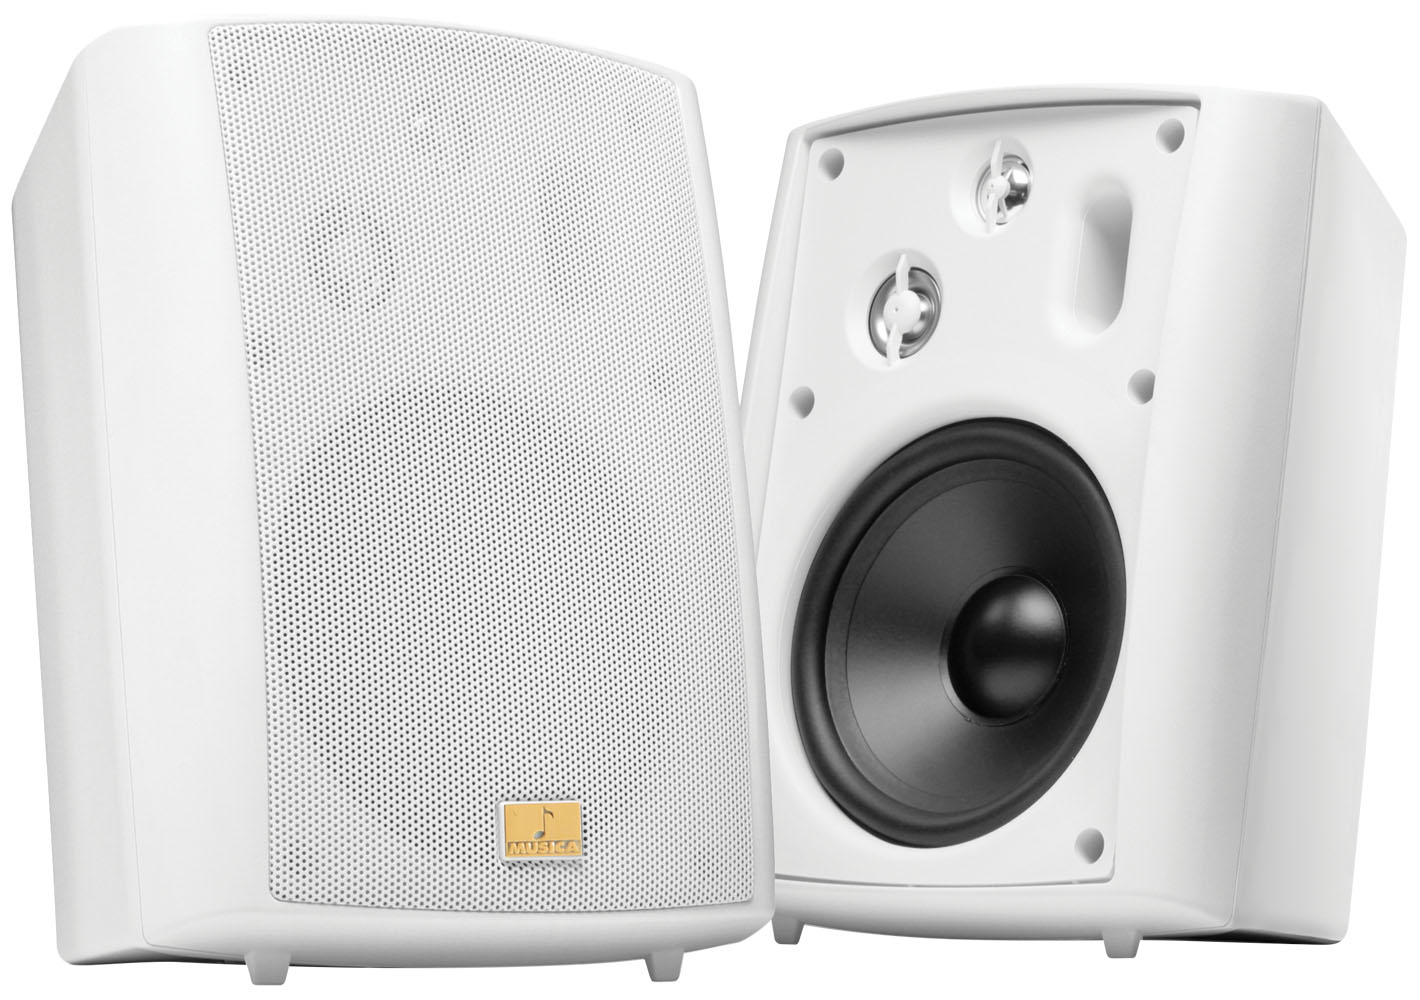 M530aw W Musica All Weather Speaker Mtx Audio Serious